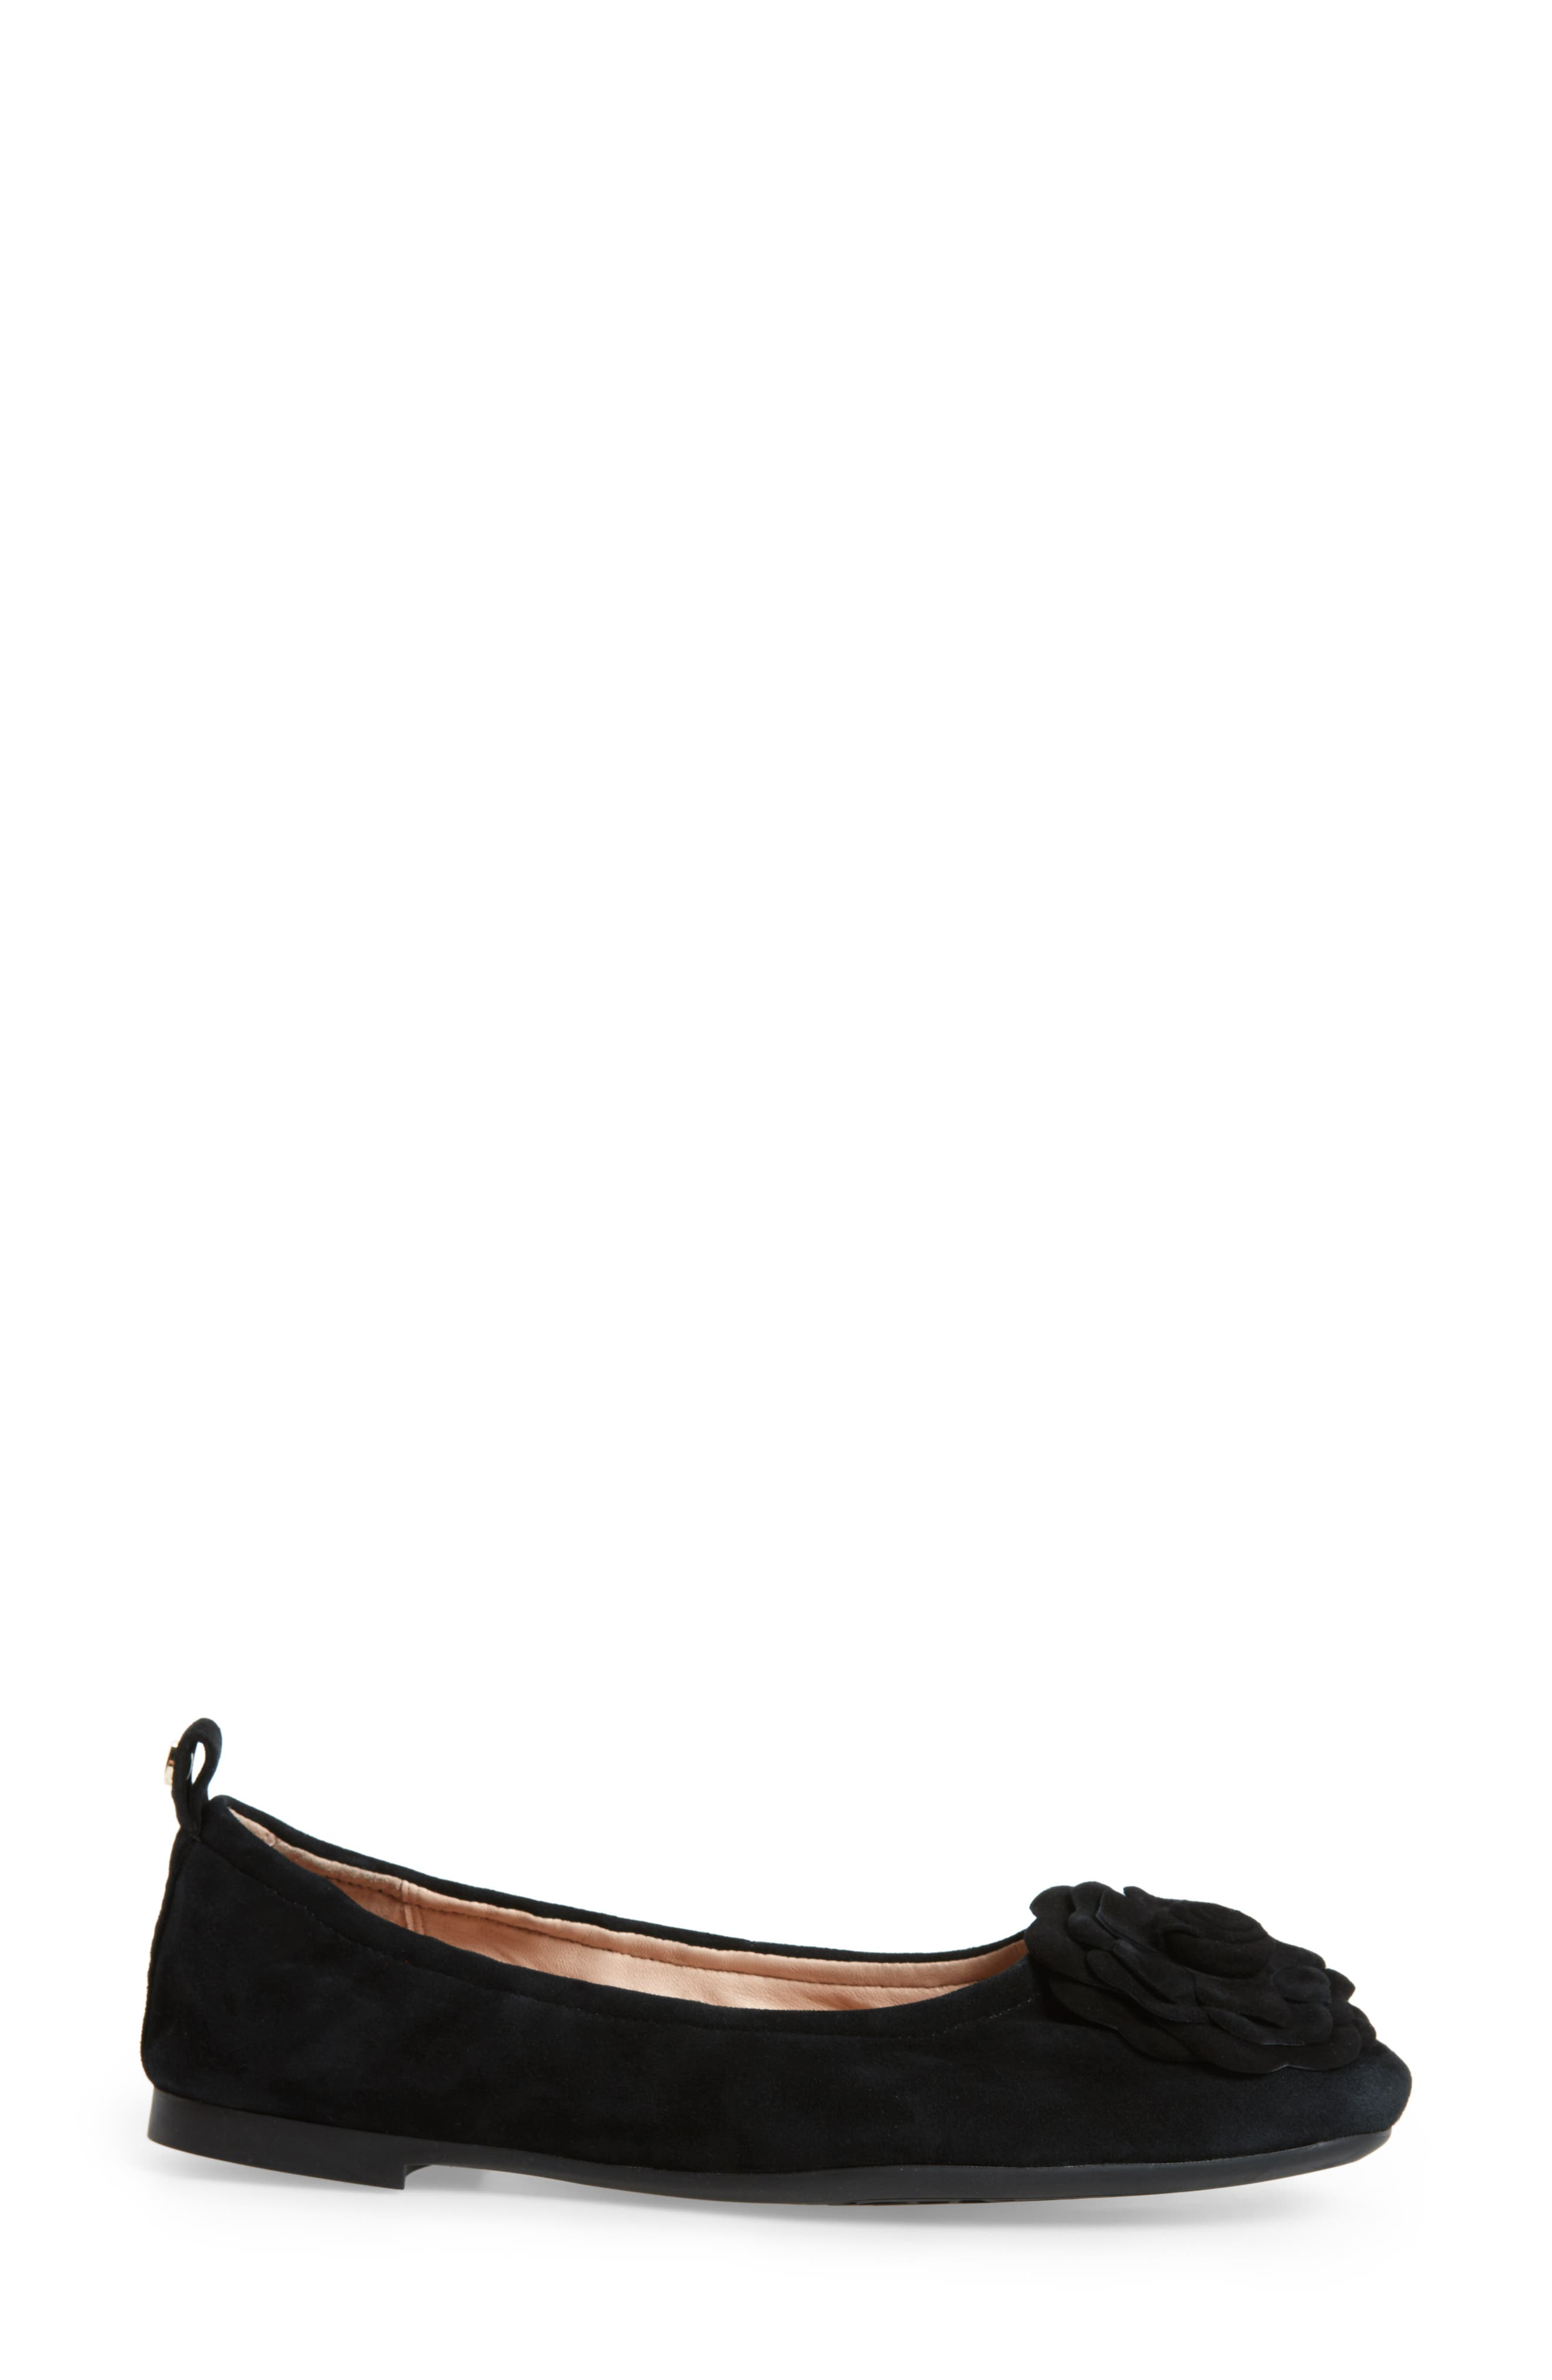 TARYN ROSE, Rosalyn Ballet Flat, Alternate thumbnail 3, color, BLACK SUEDE